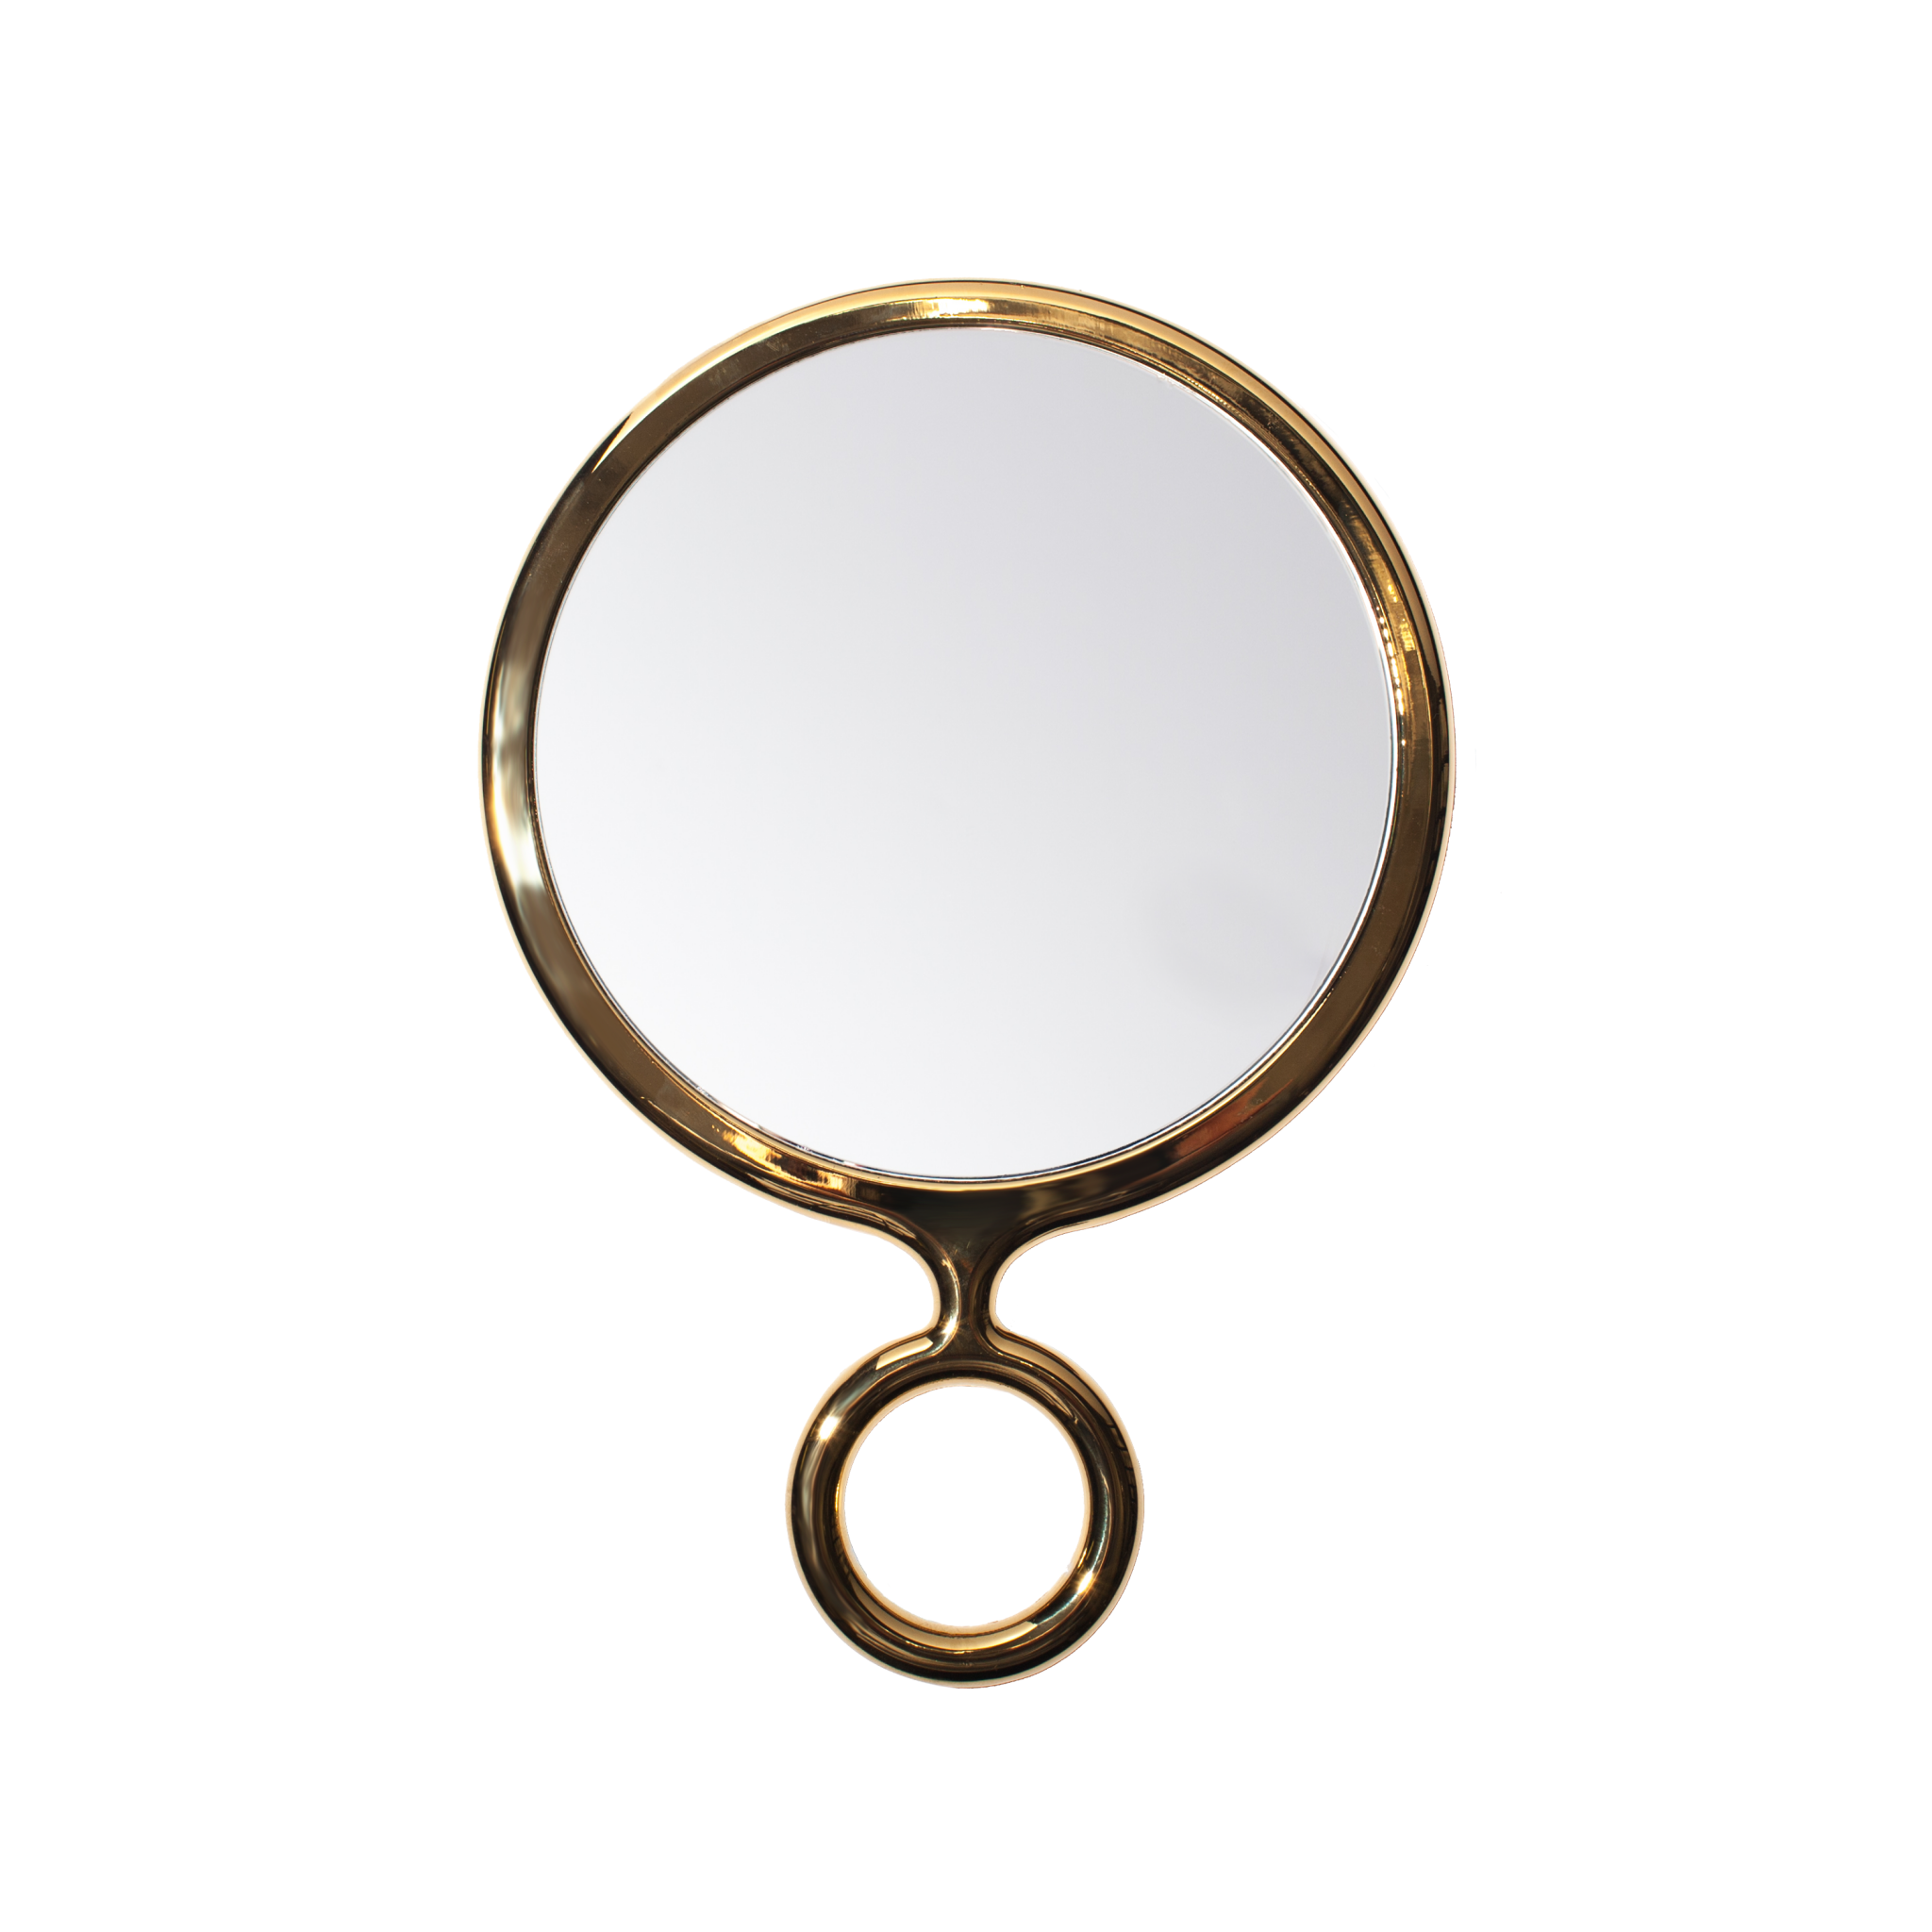 Hand mirror png. Gold handheld the elephant